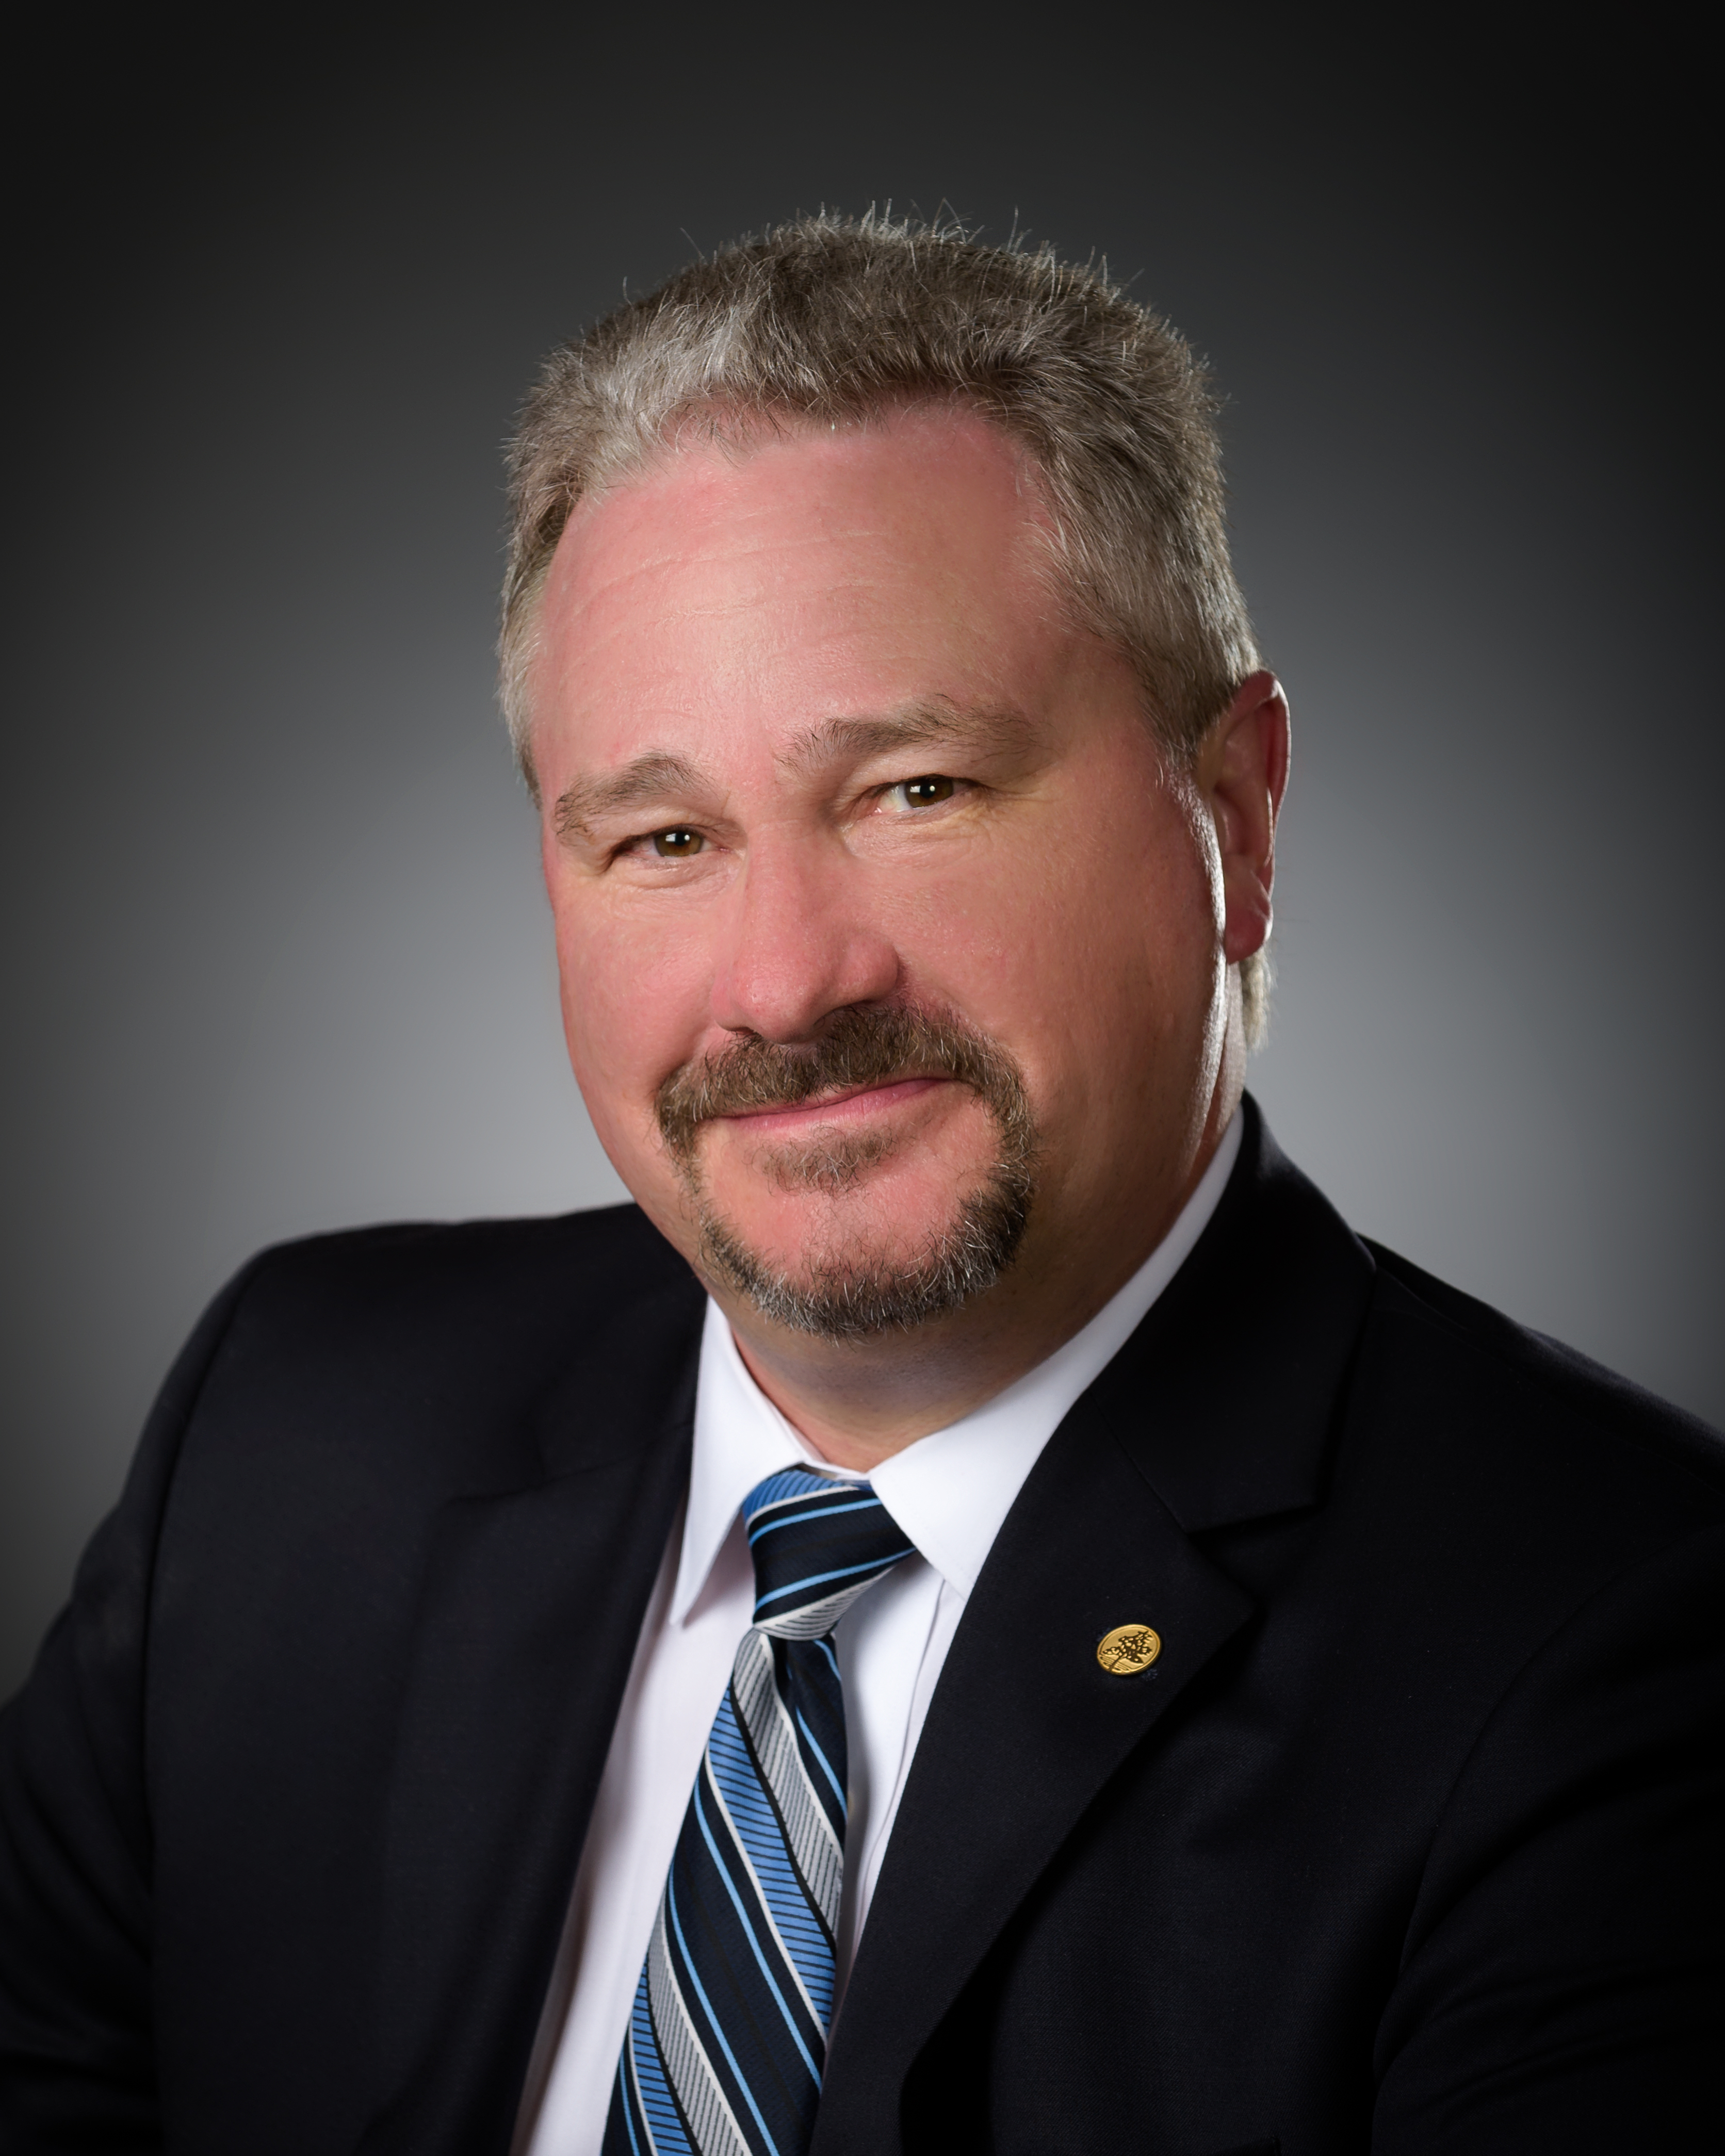 Highland Funeral Home - Scarborough  Pre-planning Funeral Director Eric Sibley